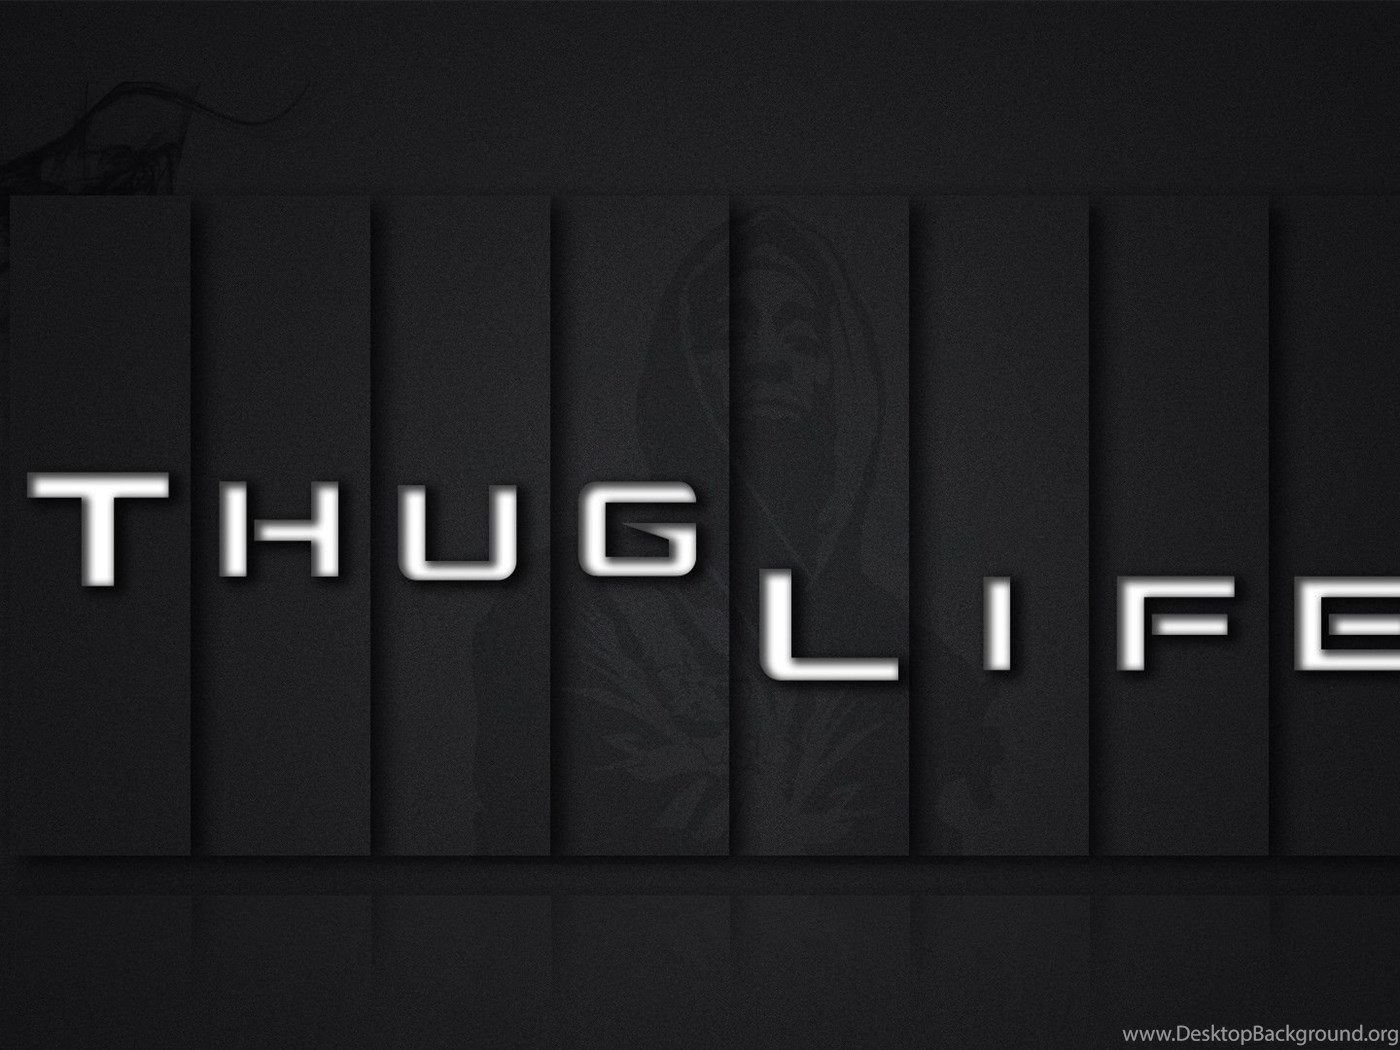 Thug life wallpapers wallpapers cave desktop background fullscreen voltagebd Images